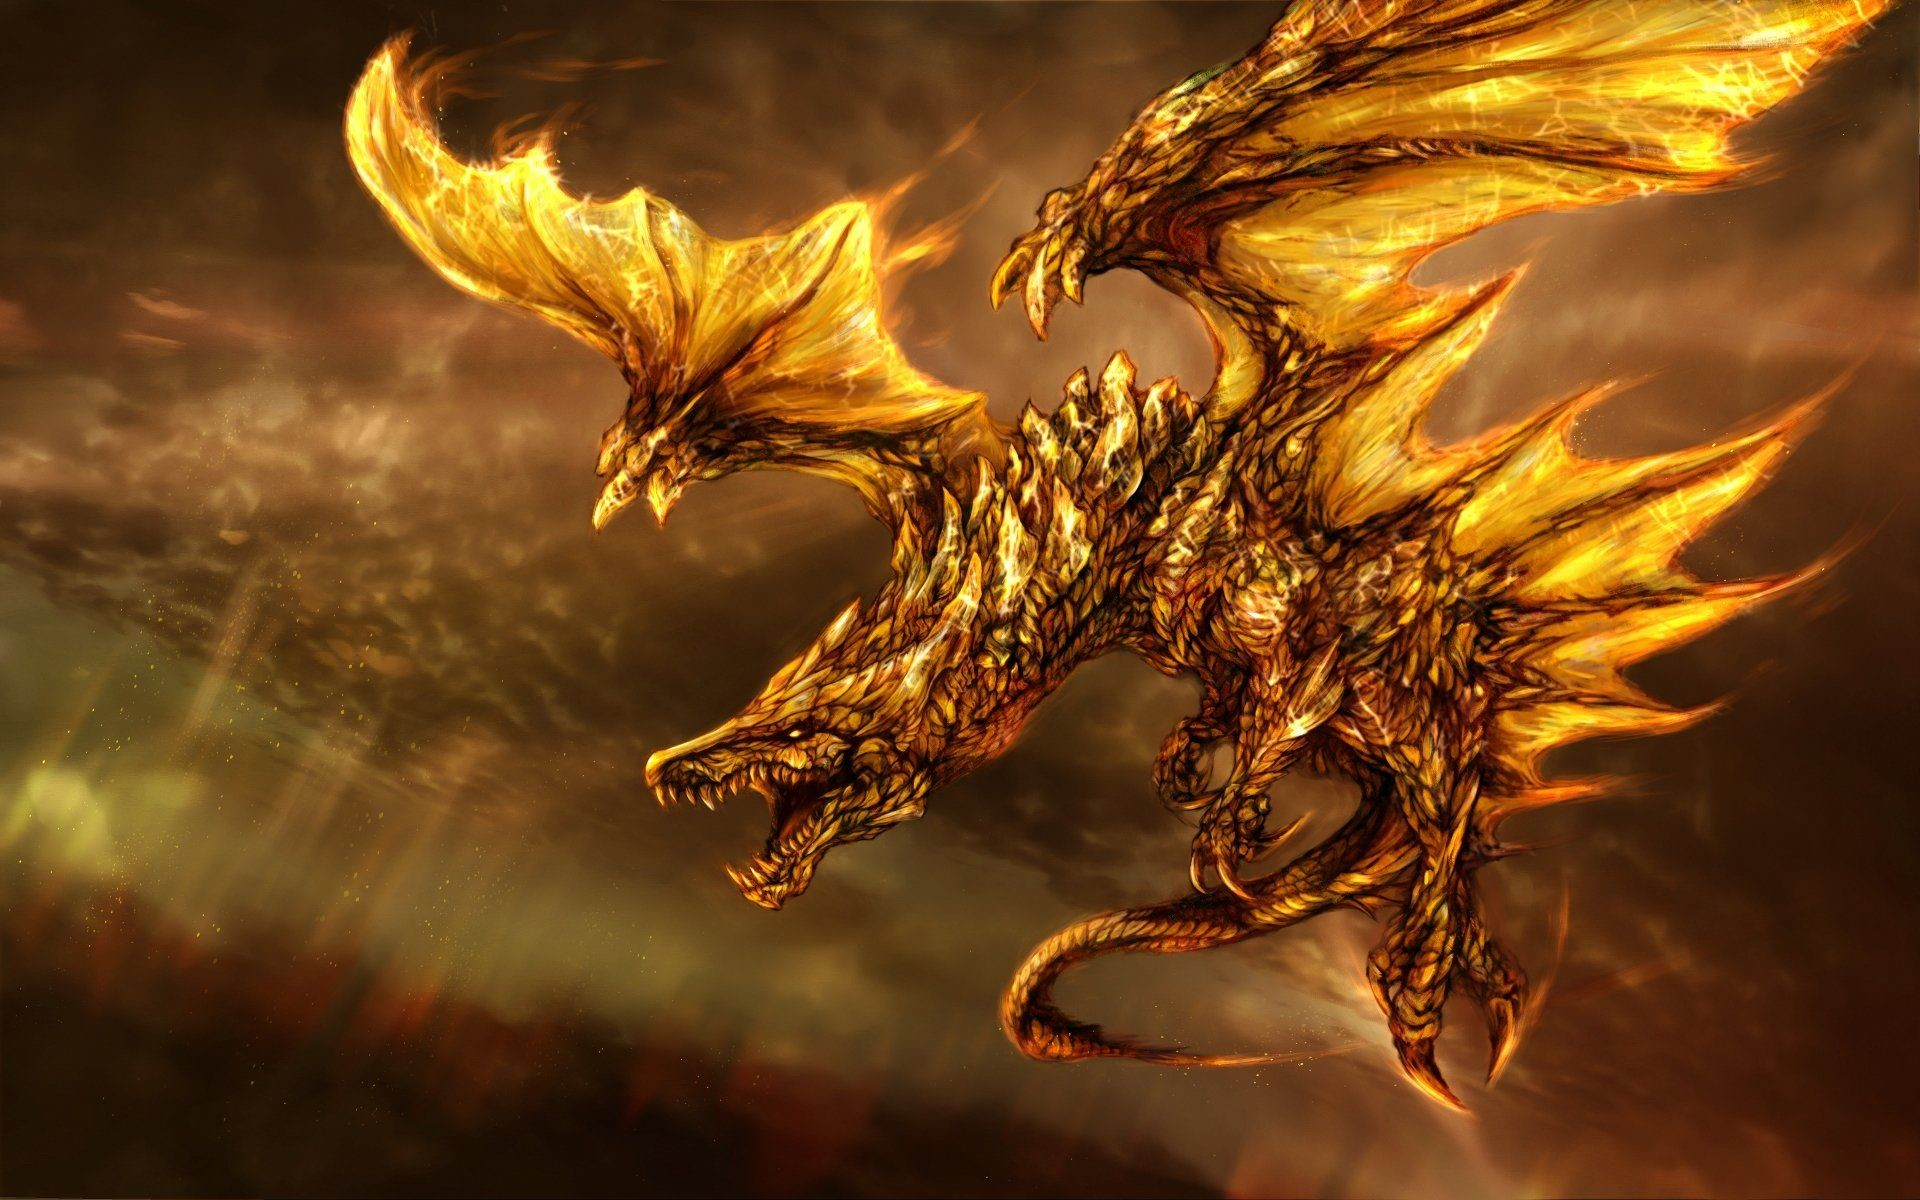 1920x1200 dragon pictures | Dragon Wallpapers HD Free Download | Wallcapture.com